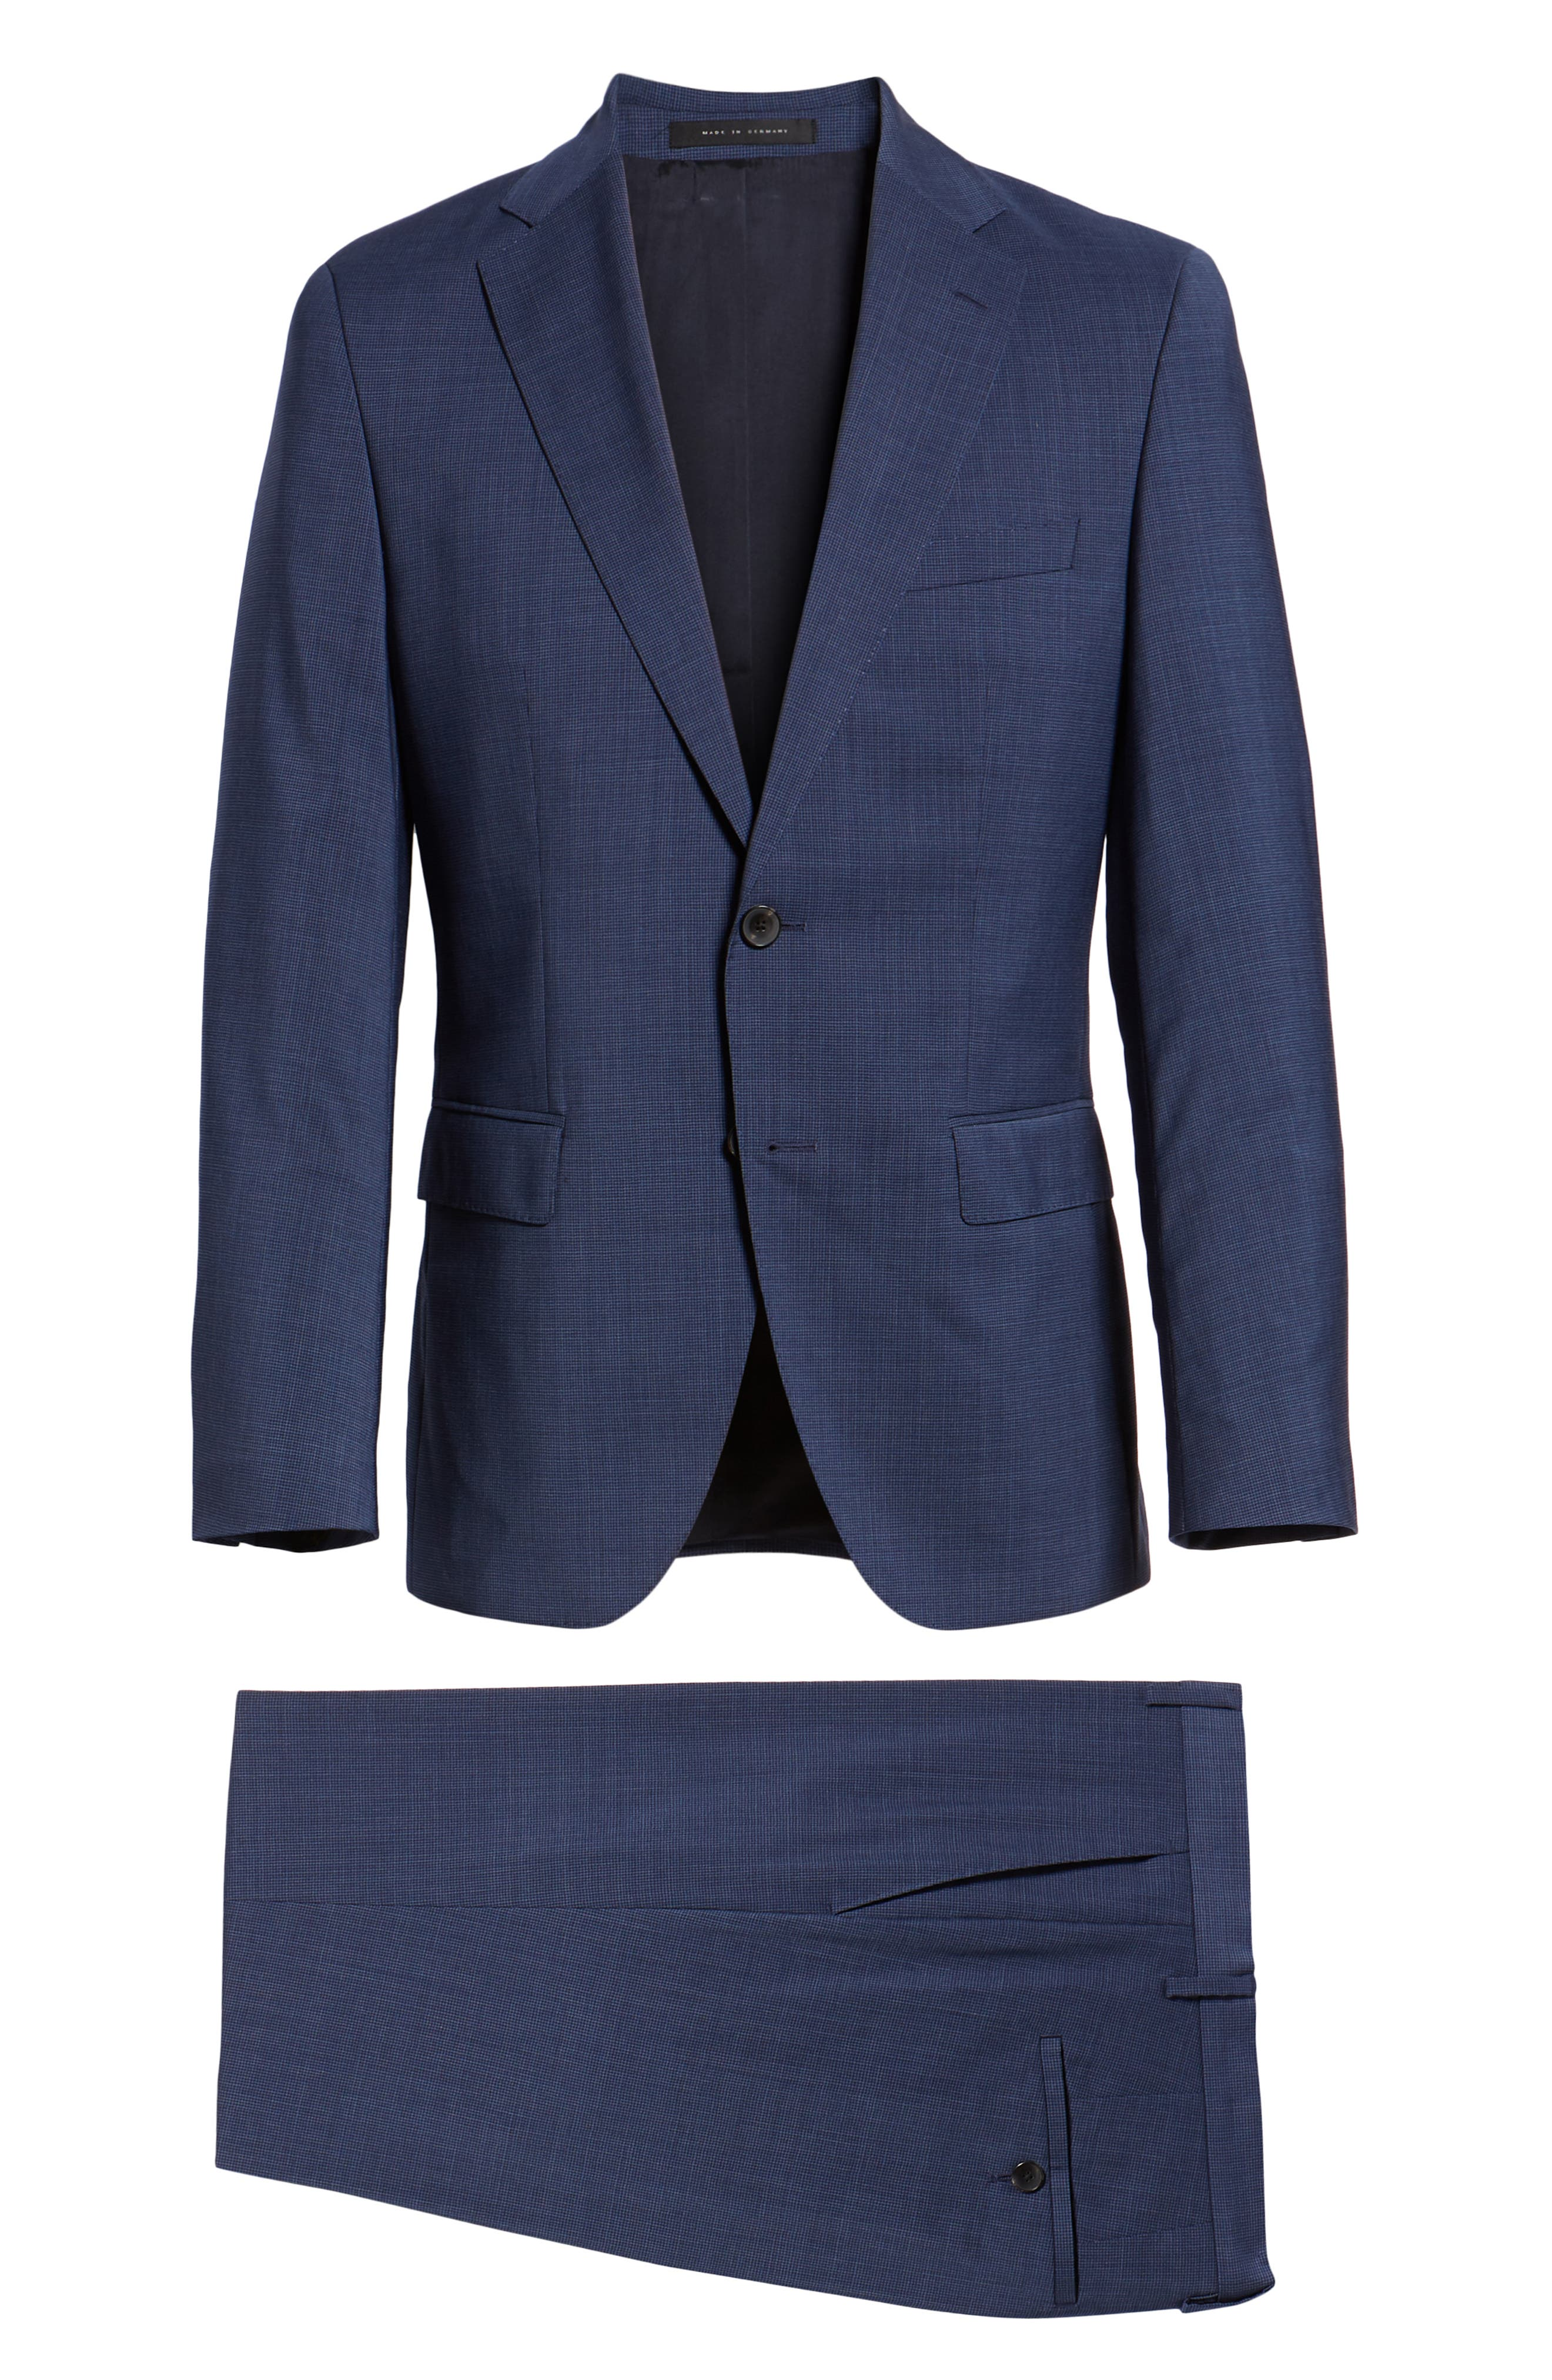 Johnstons/Lenon Classic Fit Houndstooth Wool Suit,                             Alternate thumbnail 10, color,                             BLUE